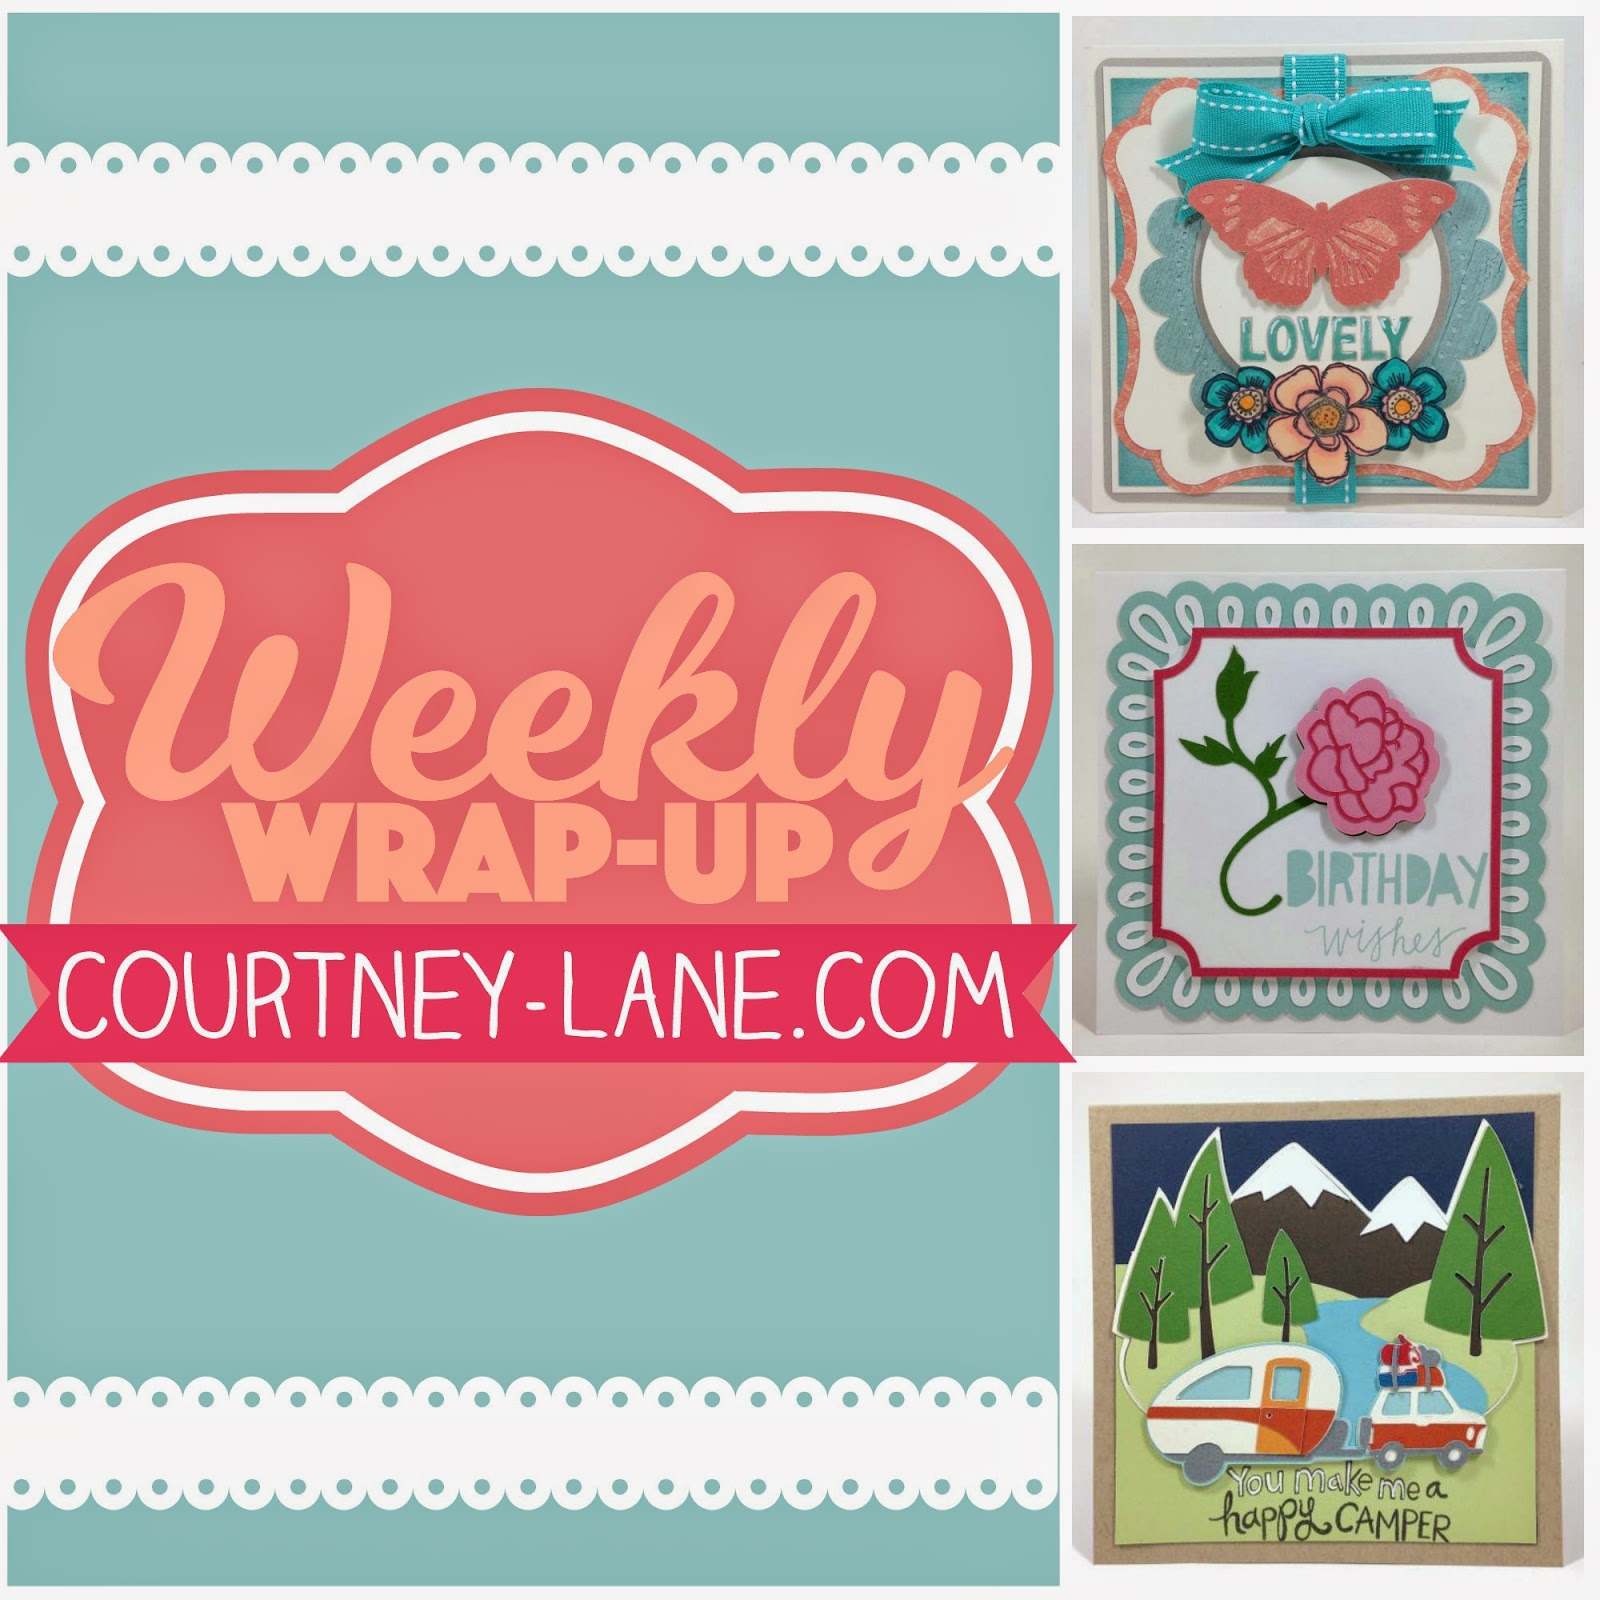 weekly-wrap up courtney-lane.com